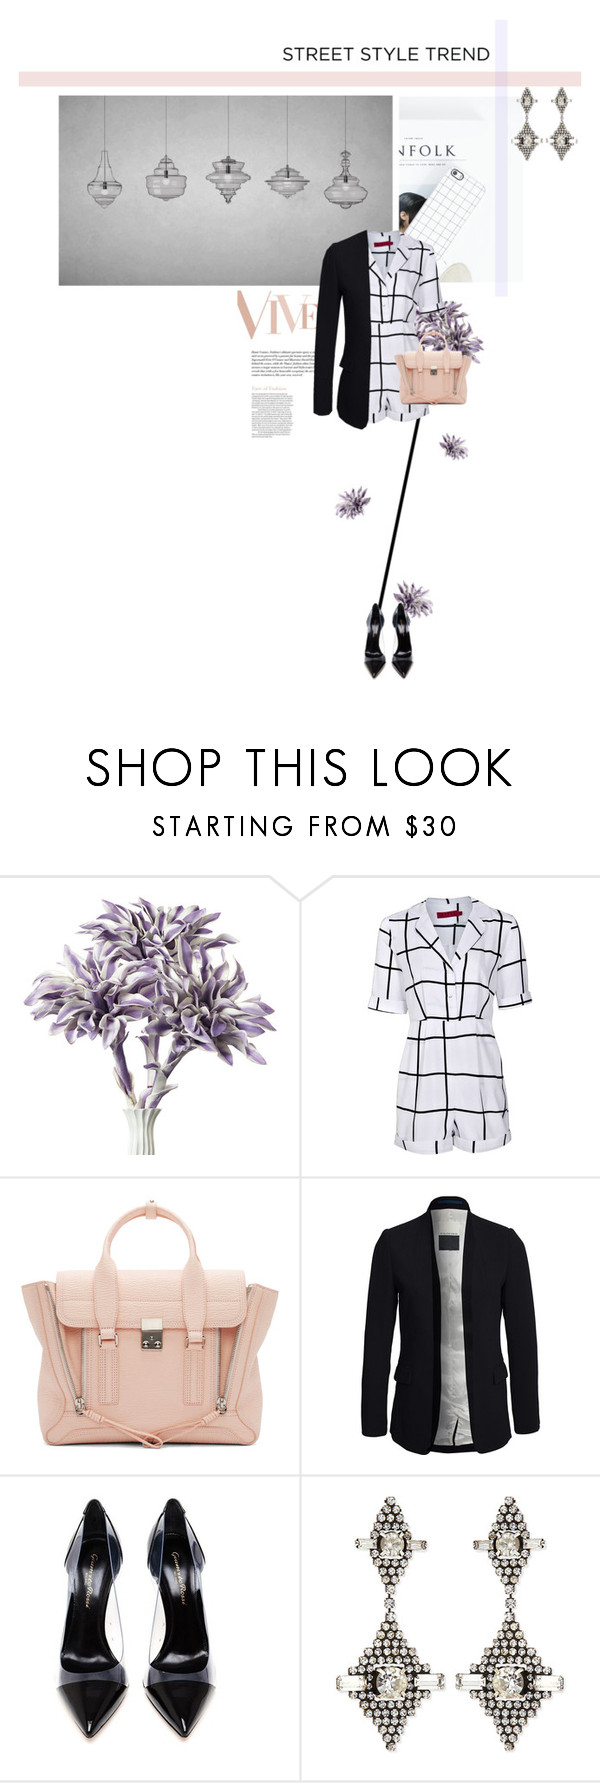 """""""Grid Check"""" by kitti-takacs ❤ liked on Polyvore featuring Boohoo, 3.1 Phillip Lim, By Malene Birger, Gianvito Rossi, DANNIJO and nyfwstreetstyle"""